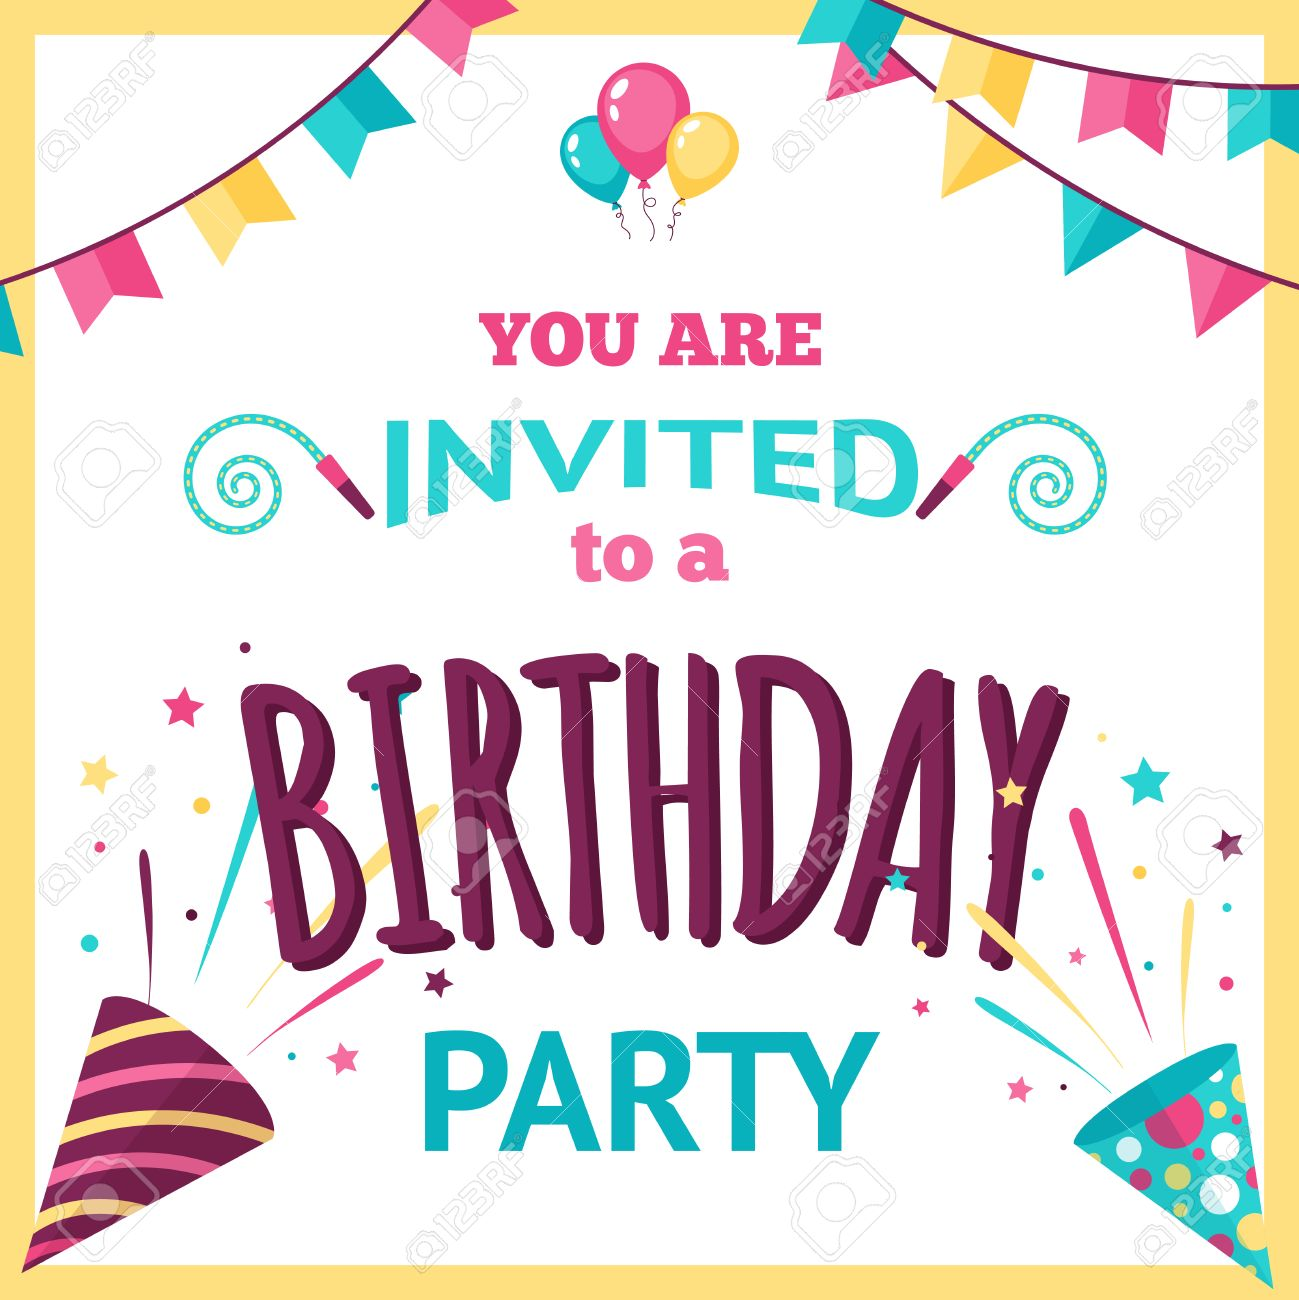 Birthday party invitation template with holiday decoration elements birthday party invitation template with holiday decoration elements vector illustration stock vector 41896199 stopboris Gallery